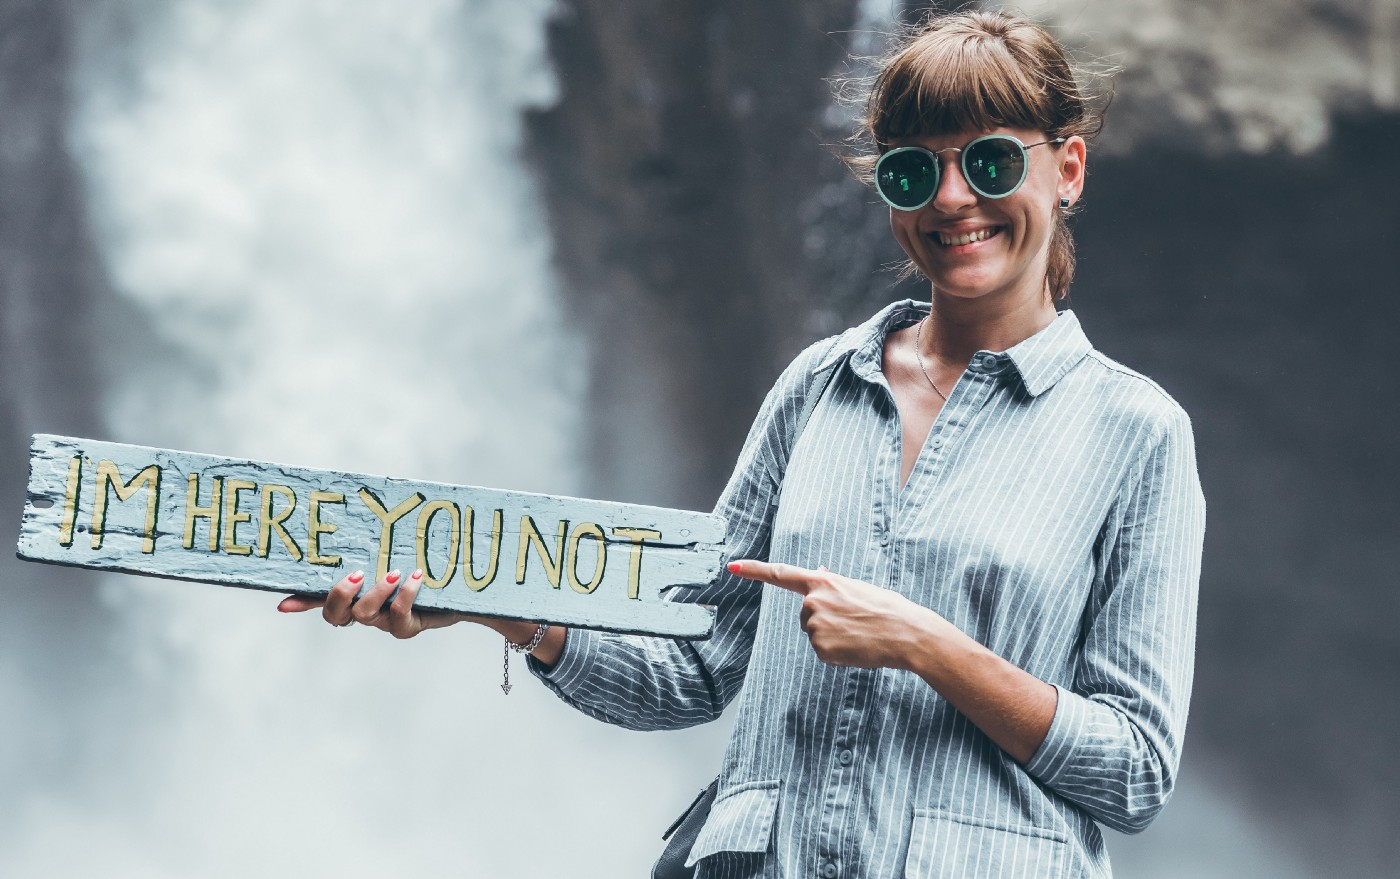 """Girl with glasses and a sign that says """"I am here you not."""" You Can Do the Same, but You Choose Not, Live with It Don't envy others' success paths Instead, love yours"""